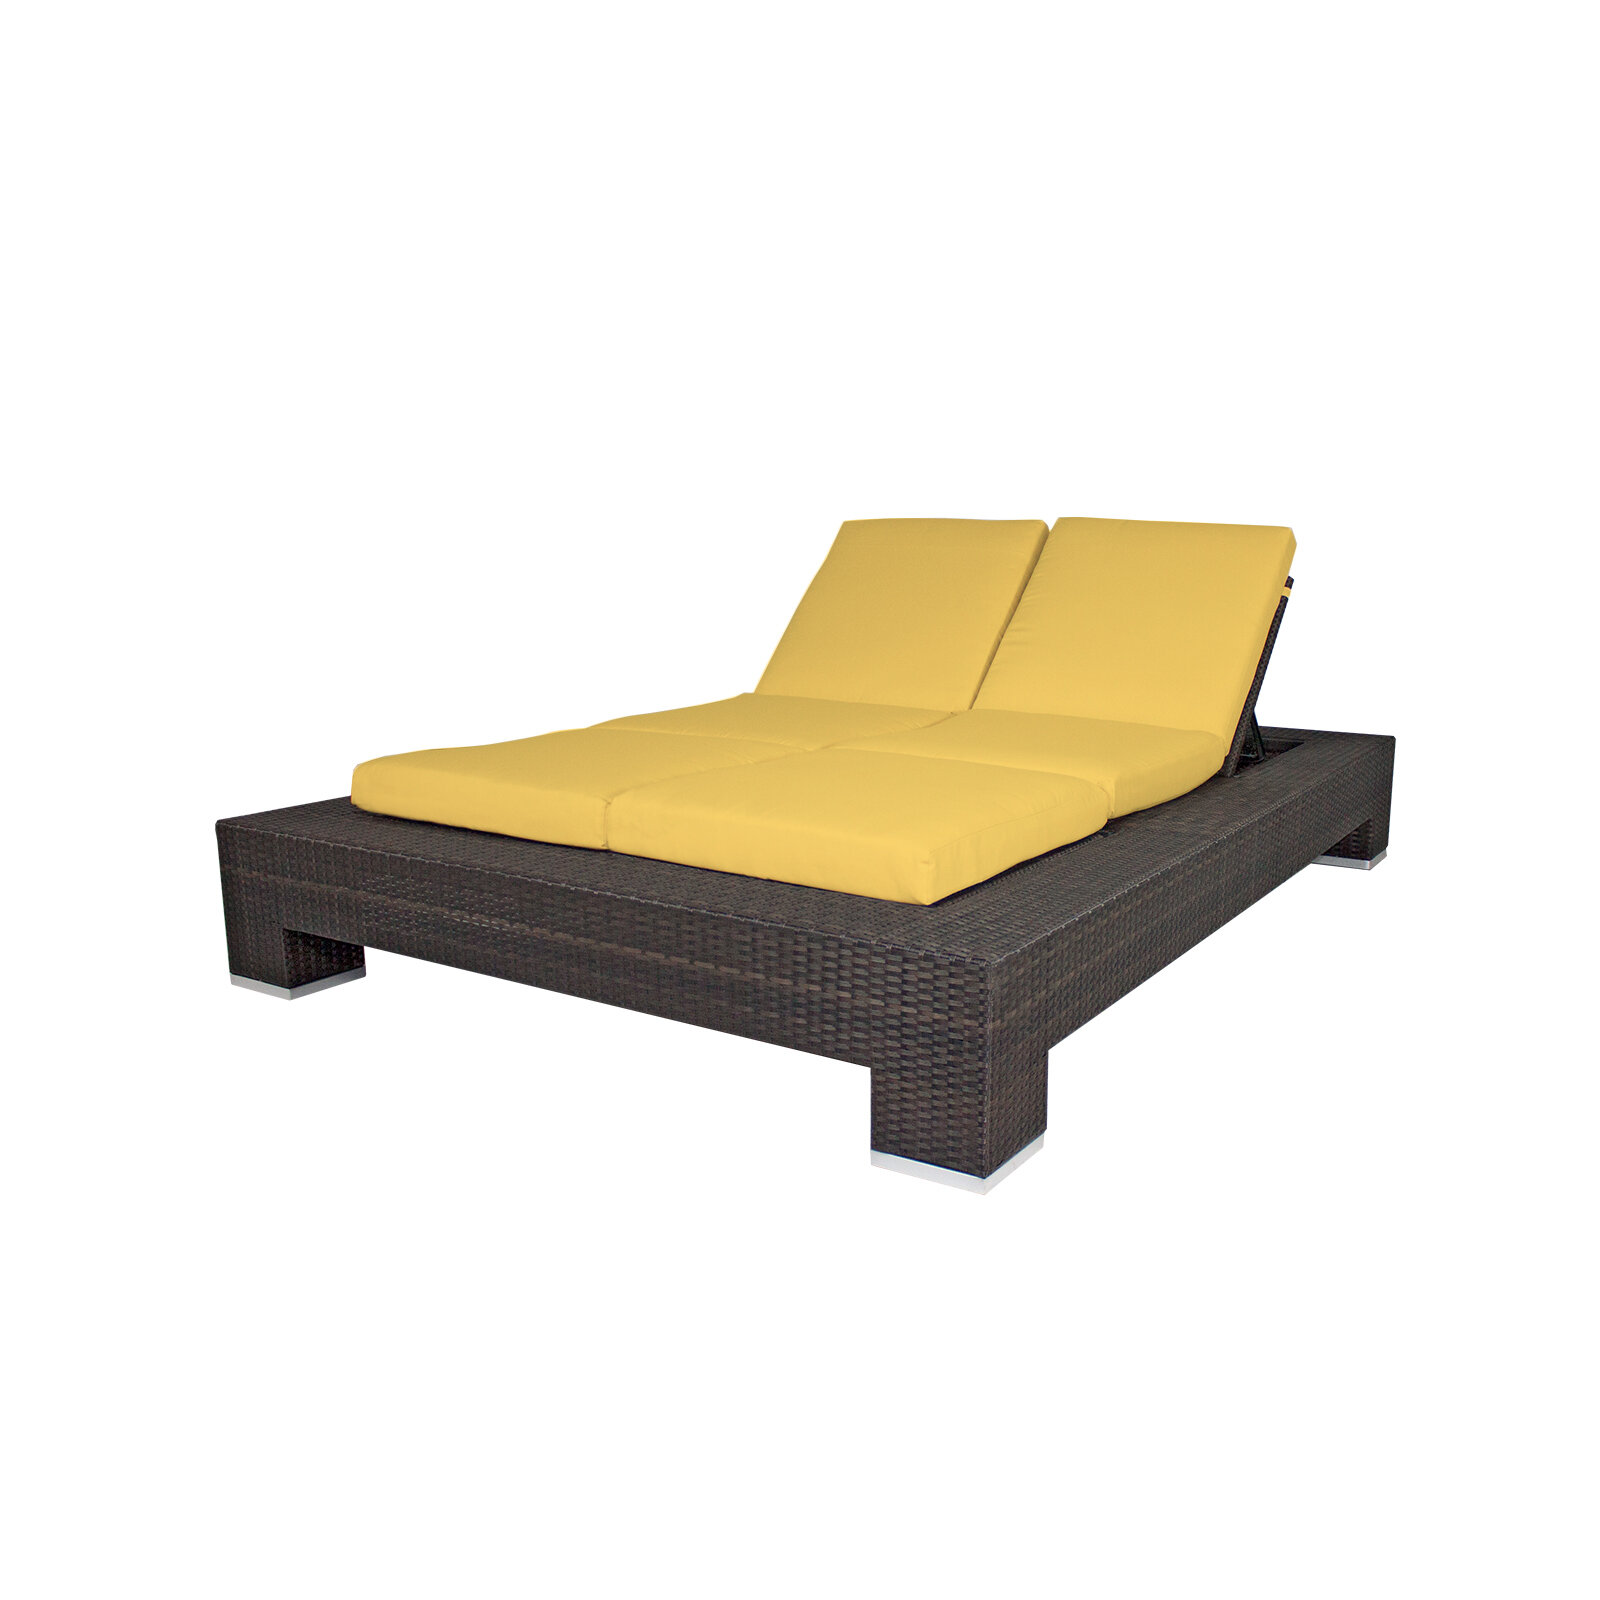 Brayden Studio Ropp Double Chaise Lounge With Cushion Reviews Wayfair